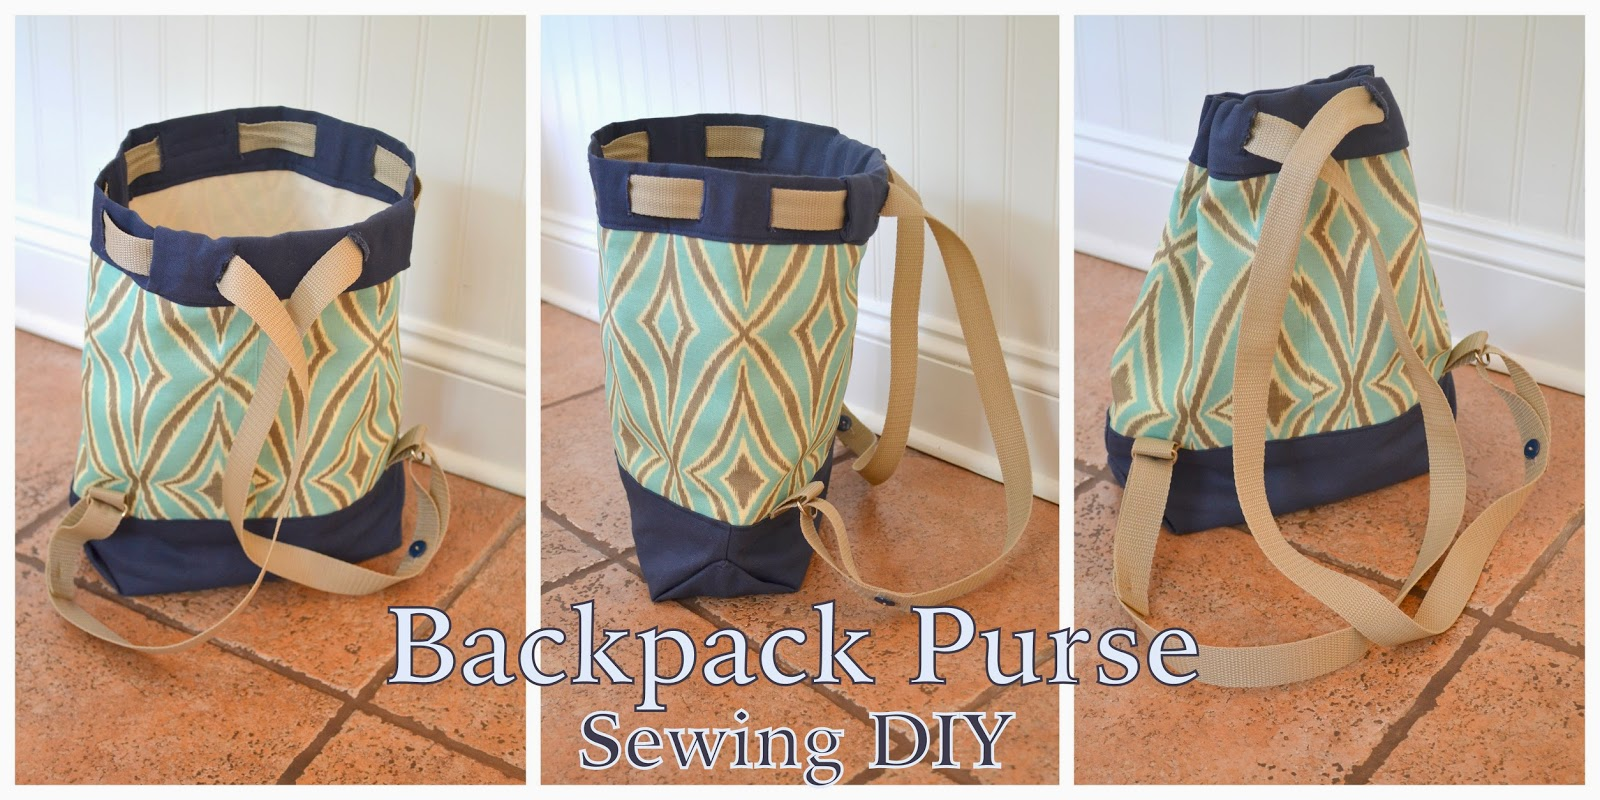 Ideas For Hanging Backpacks Diy Backpack Purse Sewing A Diaper Bag Purse Logic